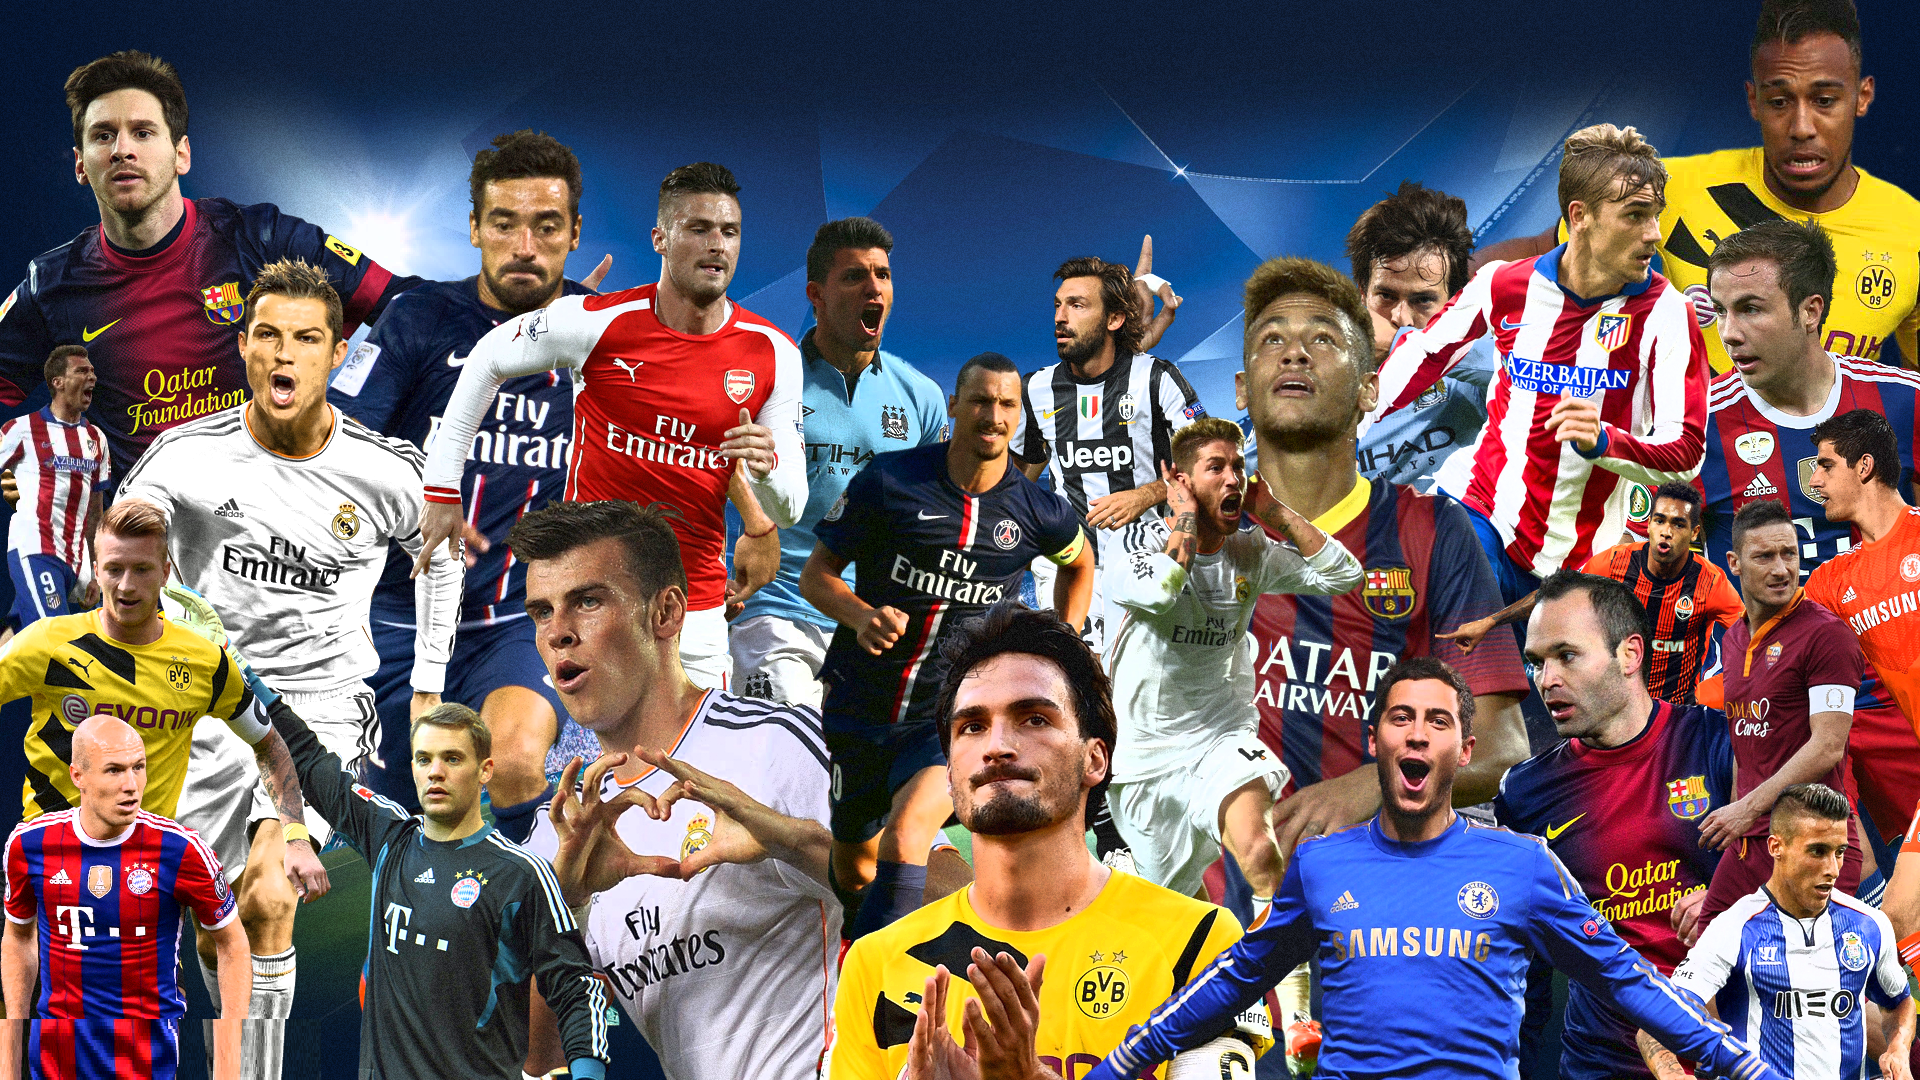 Uefa Champions League Players Hd Wallpaper Soccer Trophy World Cup Champnion